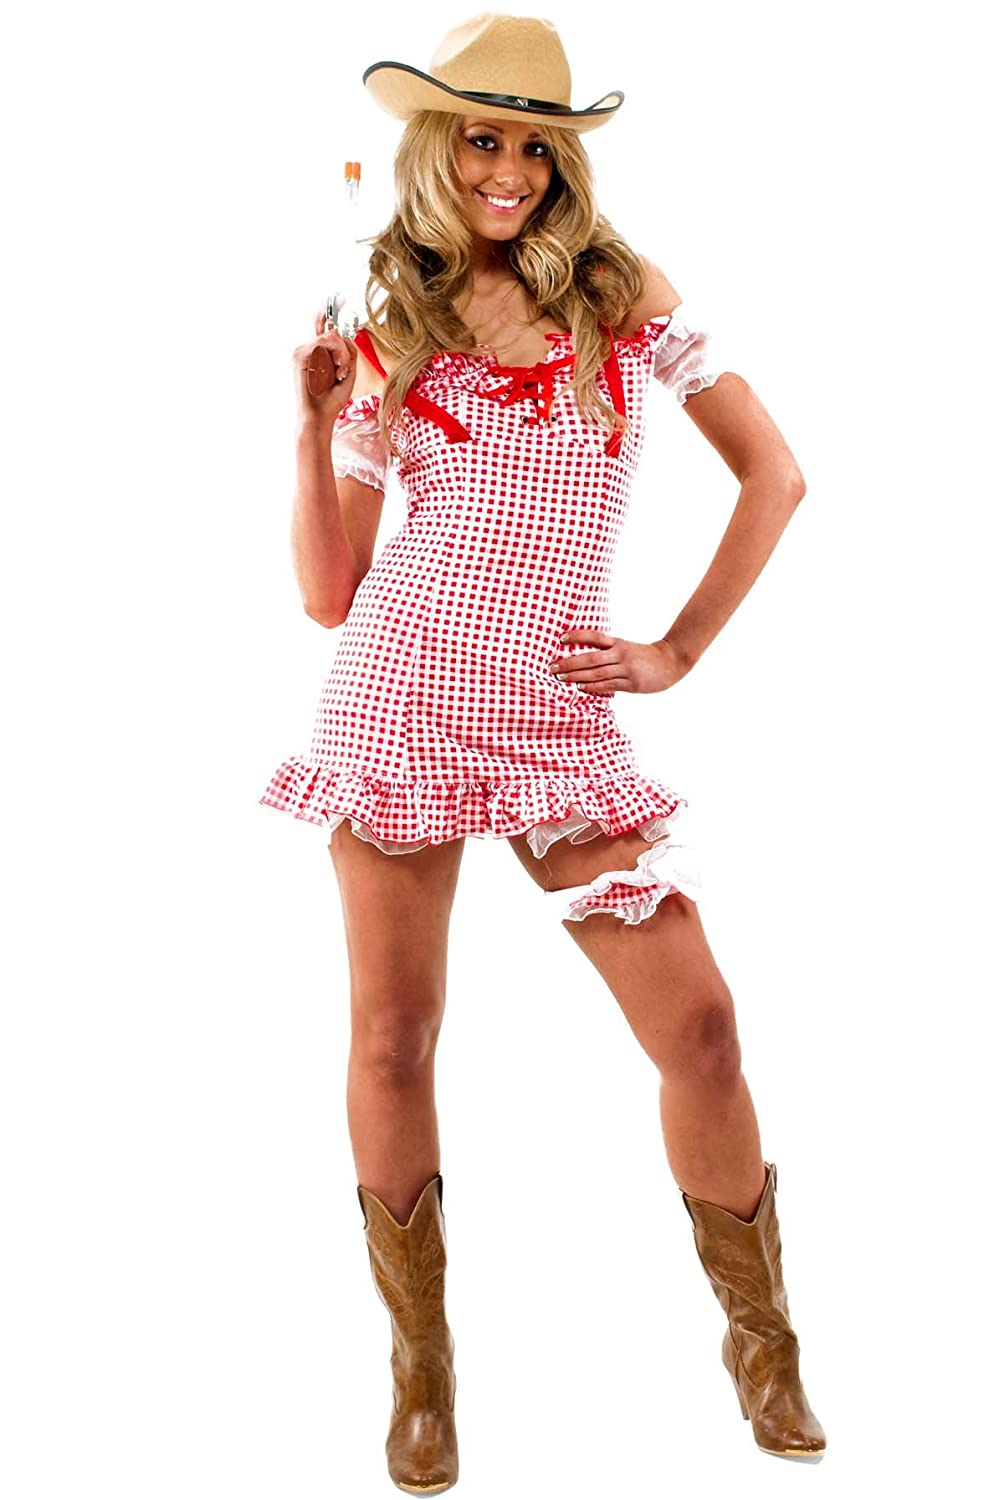 cc cowgirl cutie daisy duke fancy dress costume size 6 8 amazoncouk toys games